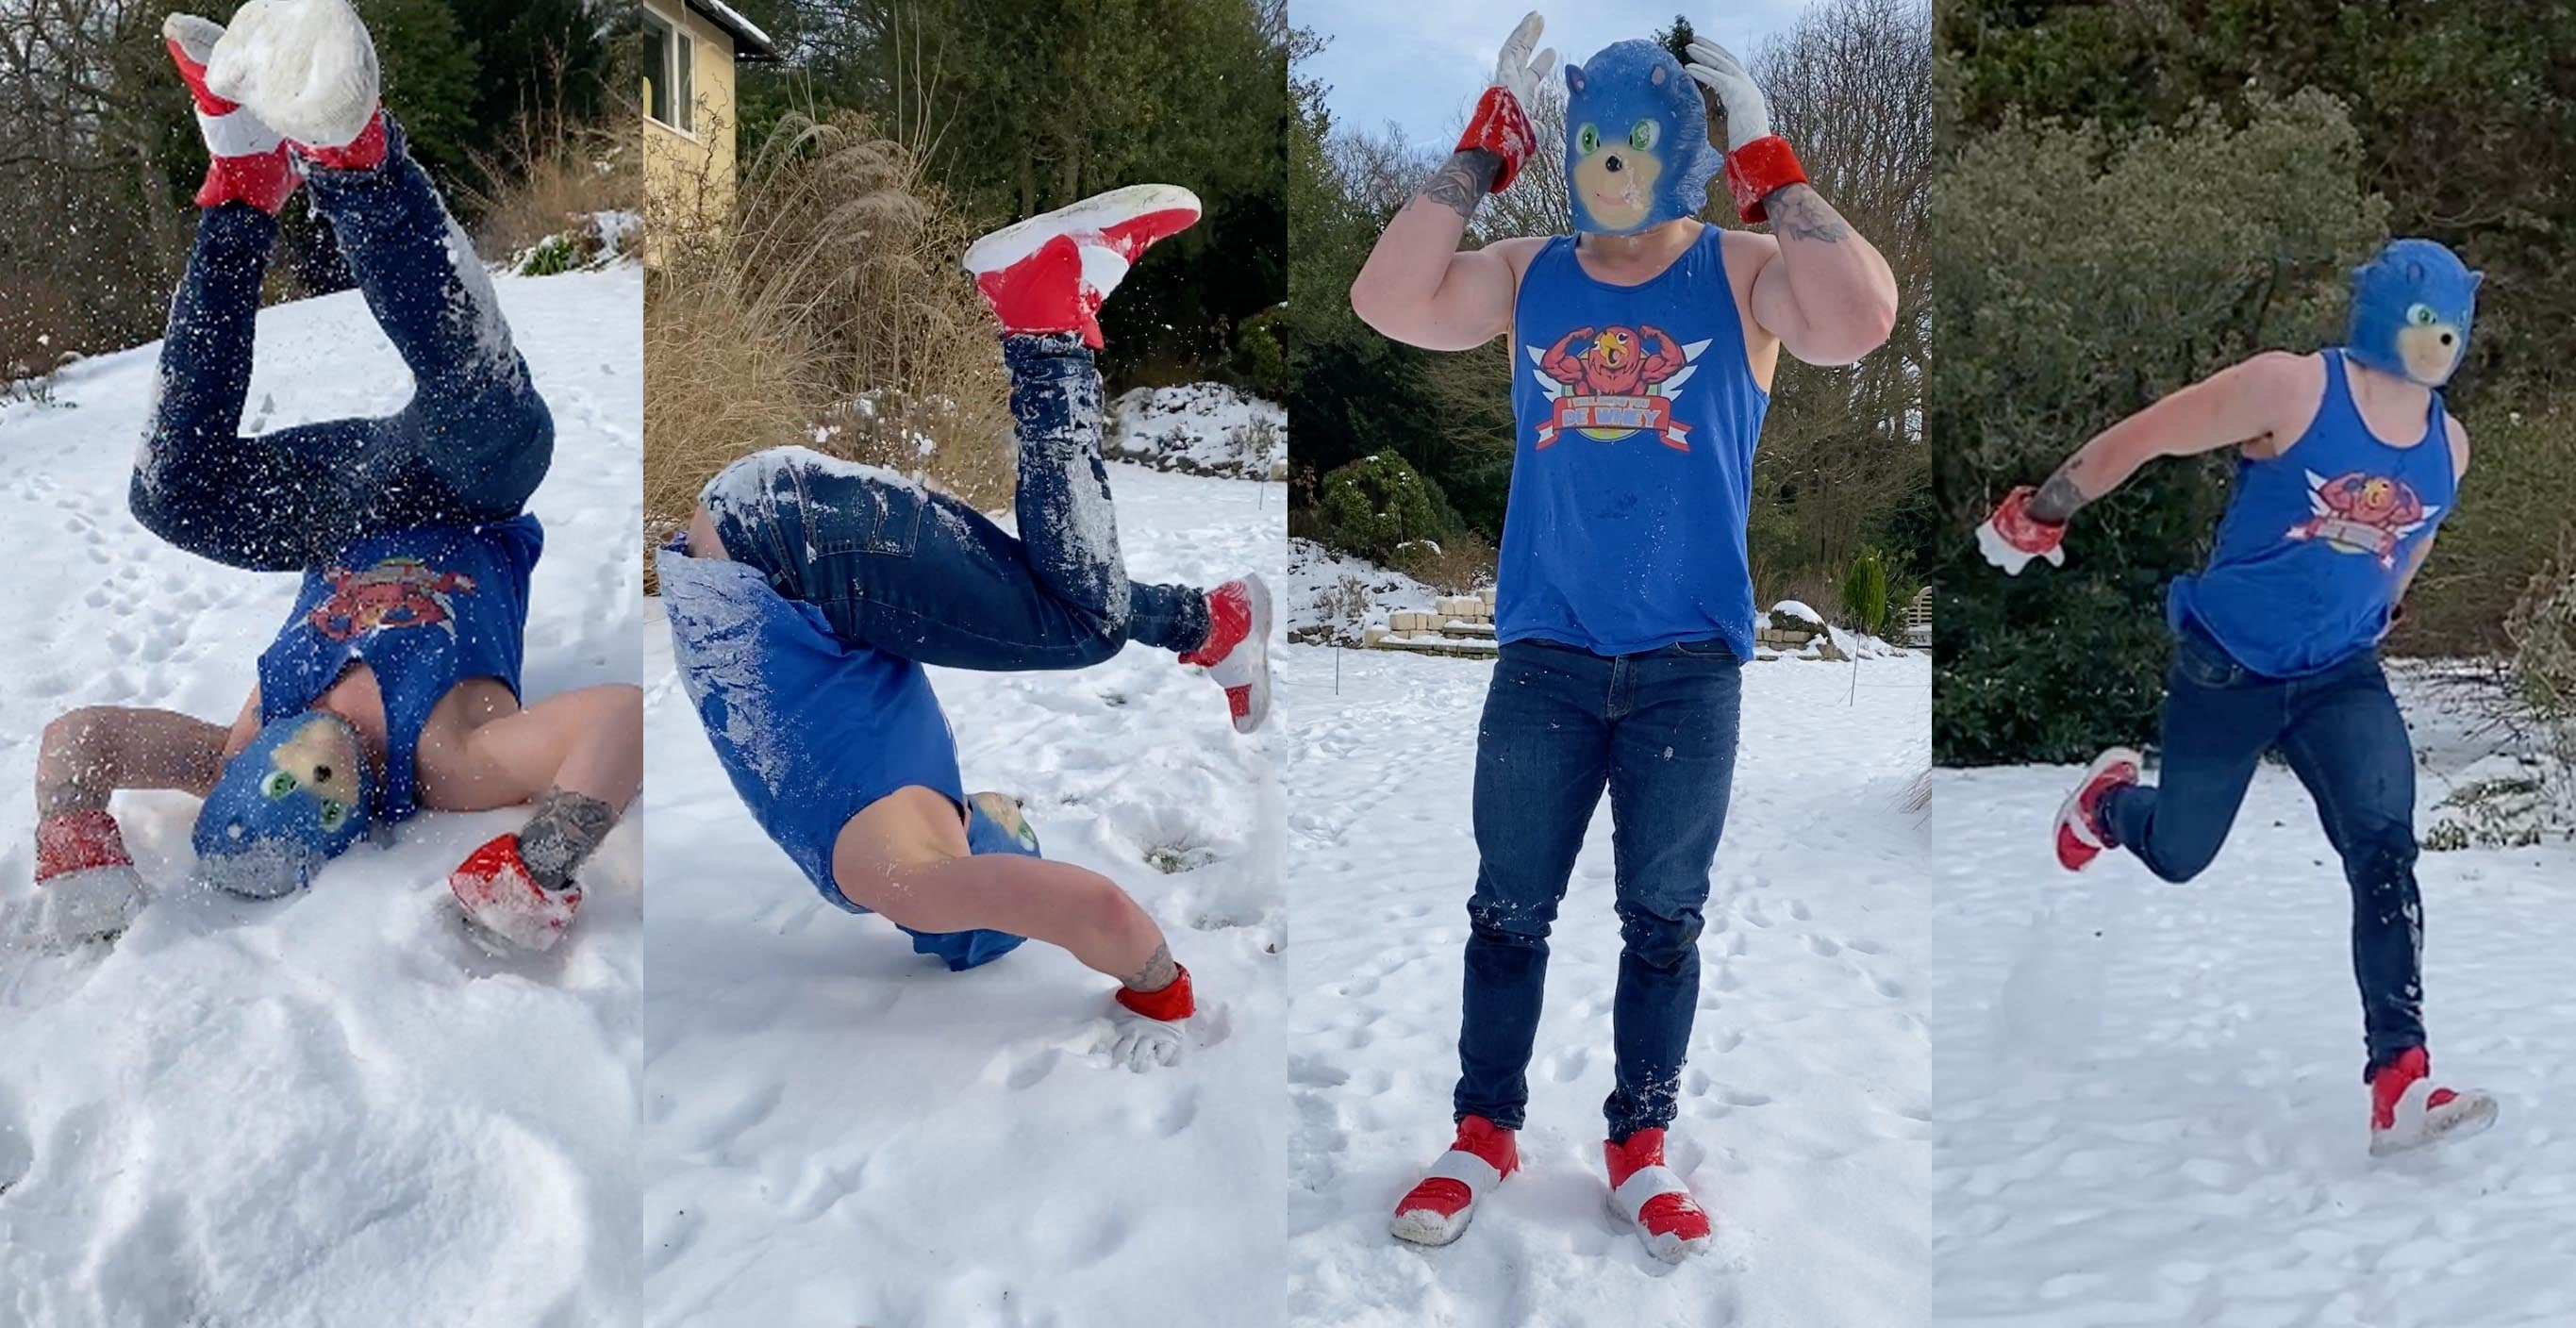 Creepy movie sonic cosplay wearing the puma shoes from the movie (or a close fit)